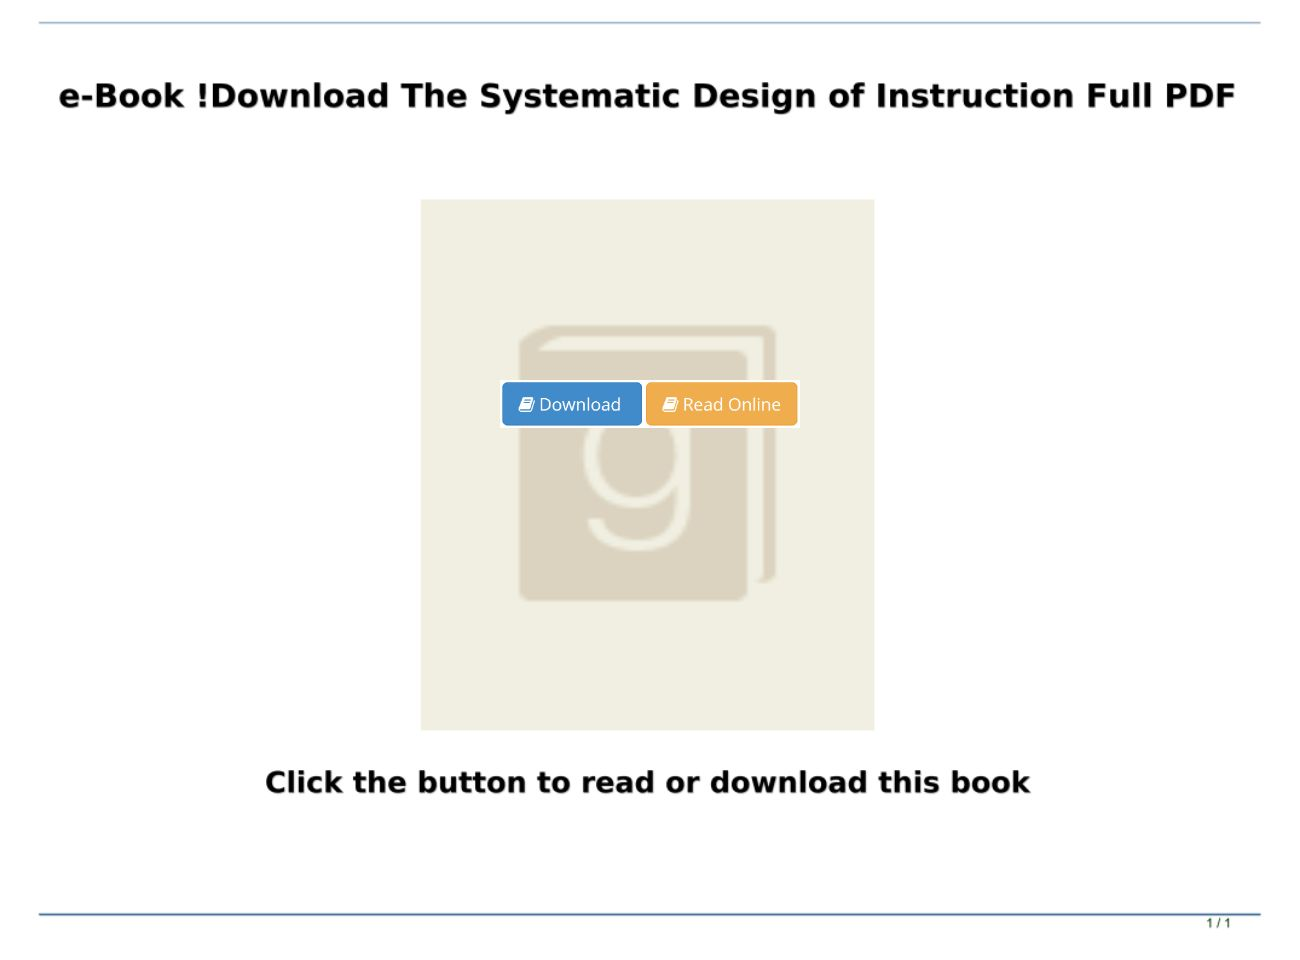 Read Pdf The Systematic Design Of Instruction Full Pdf Text Images Music Video Glogster Edu Interactive Multimedia Posters